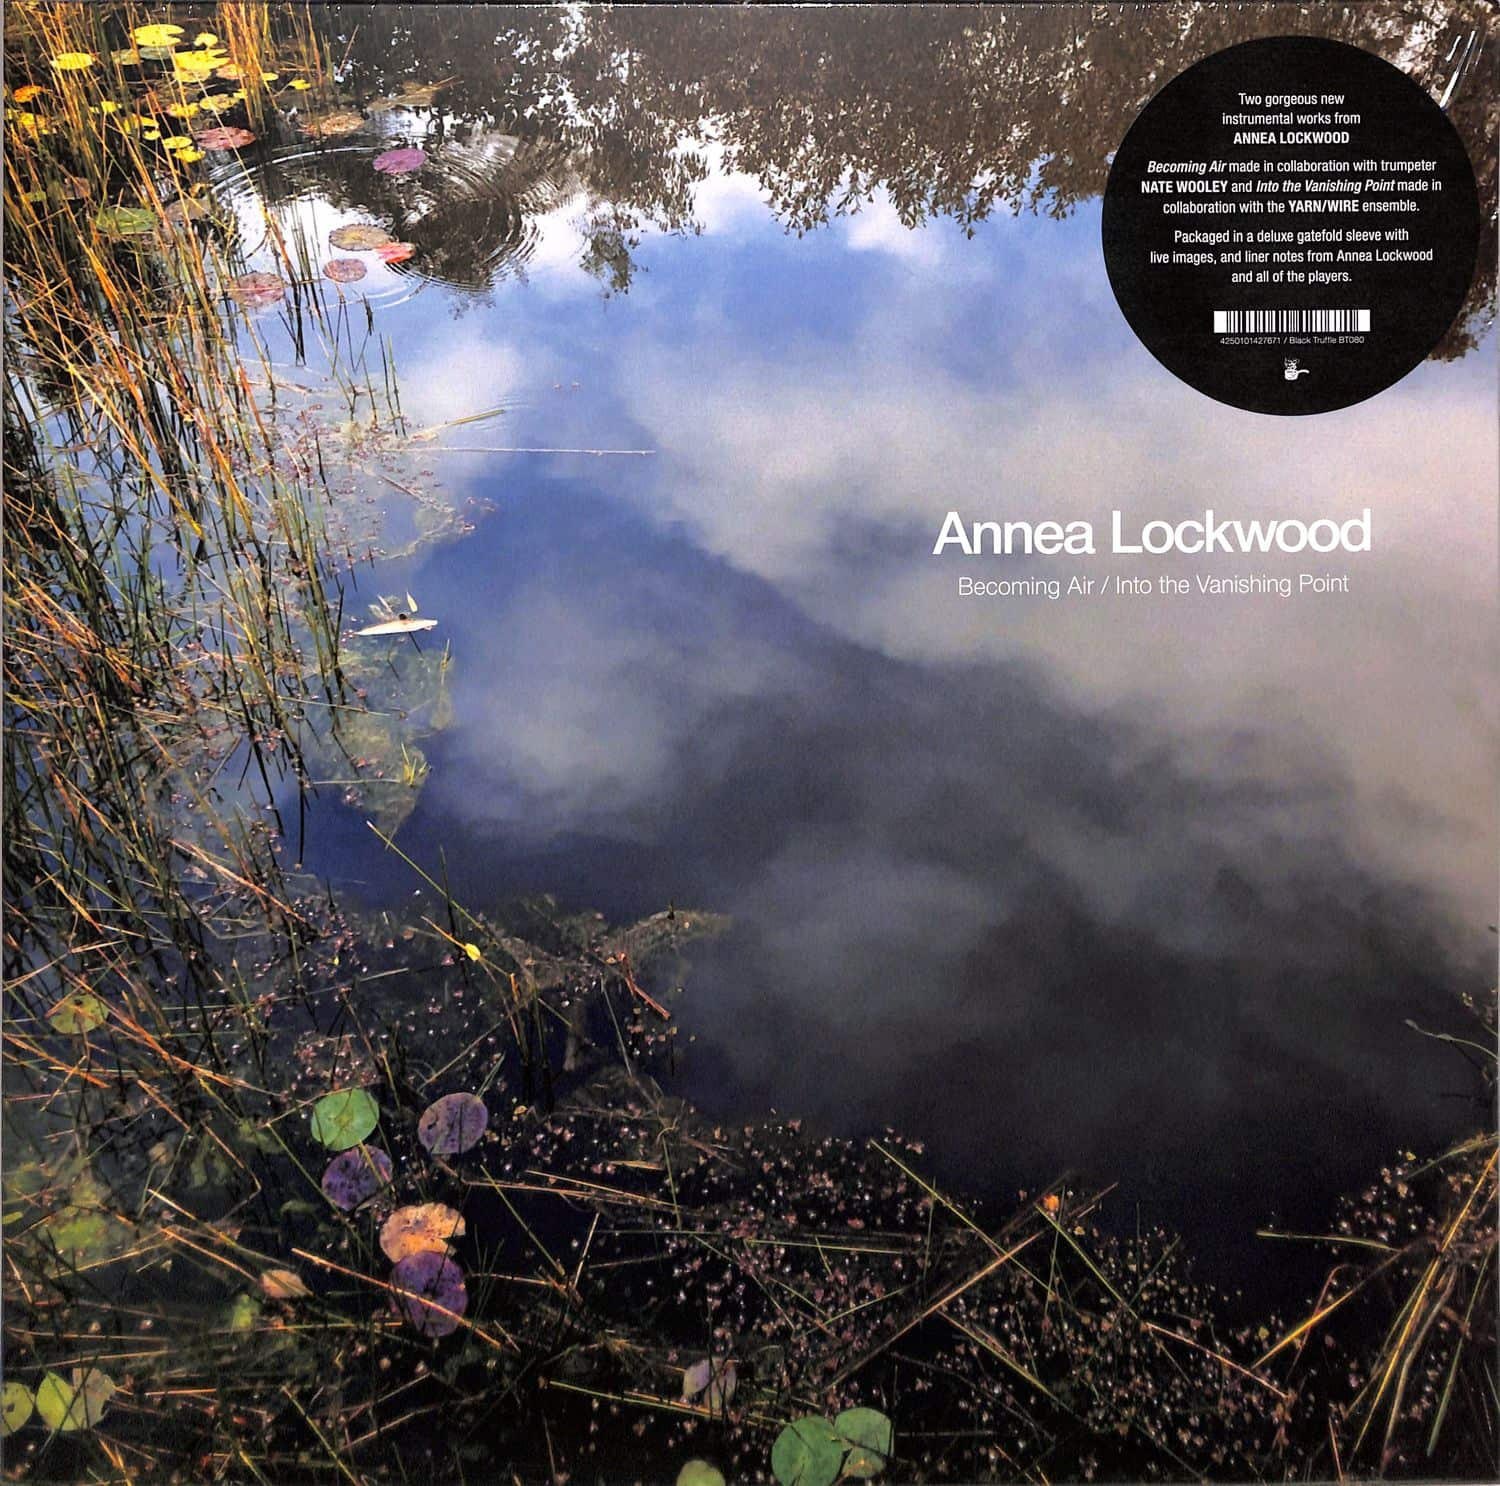 Annea Lockwood - BECOMING AIR / INTO THE VANISHING POINT